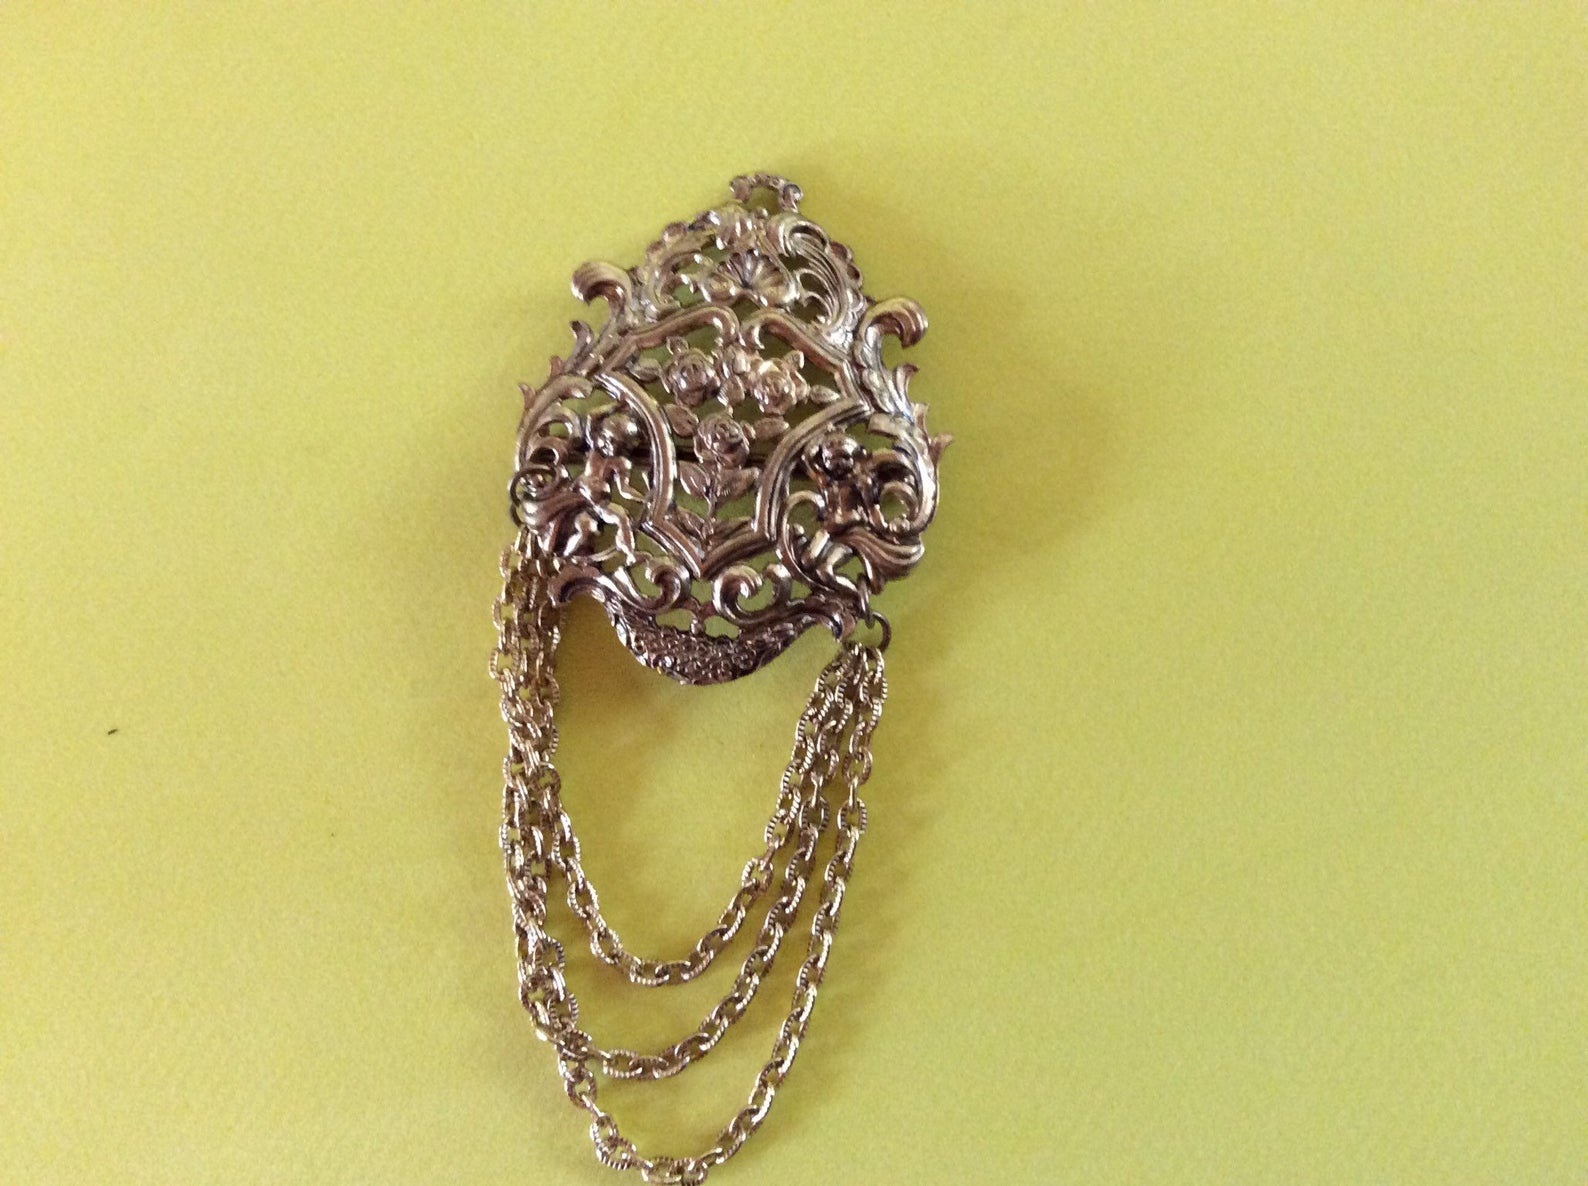 Gold brooch. Regal emblem with chains hanging off it.